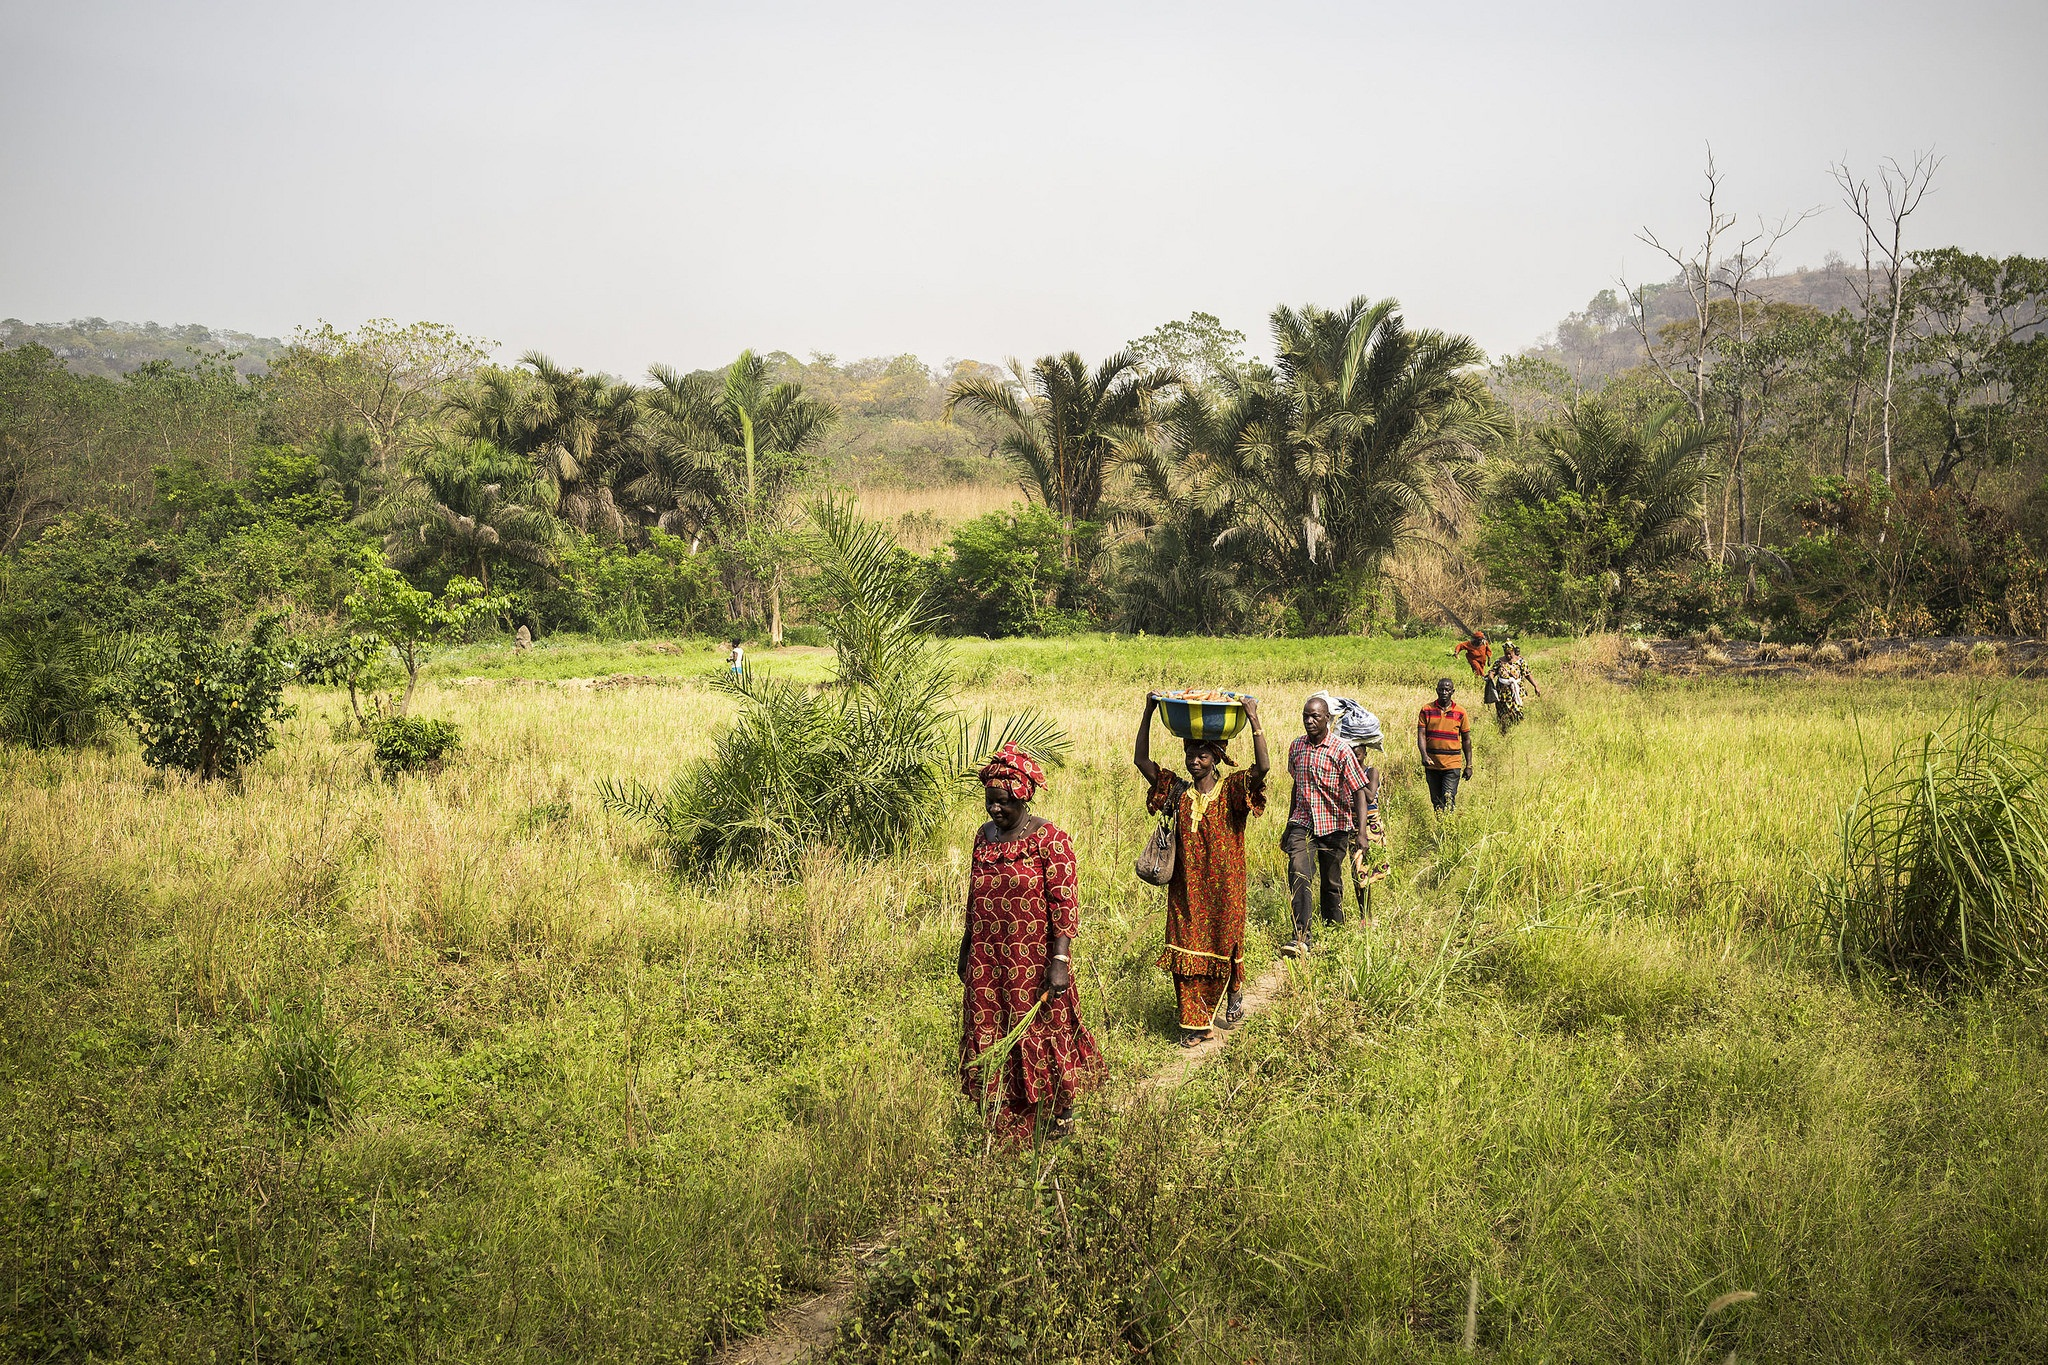 Around 570 millions farms across the world are facing the threat of climate change at present Credit: FAO Flickr photostream